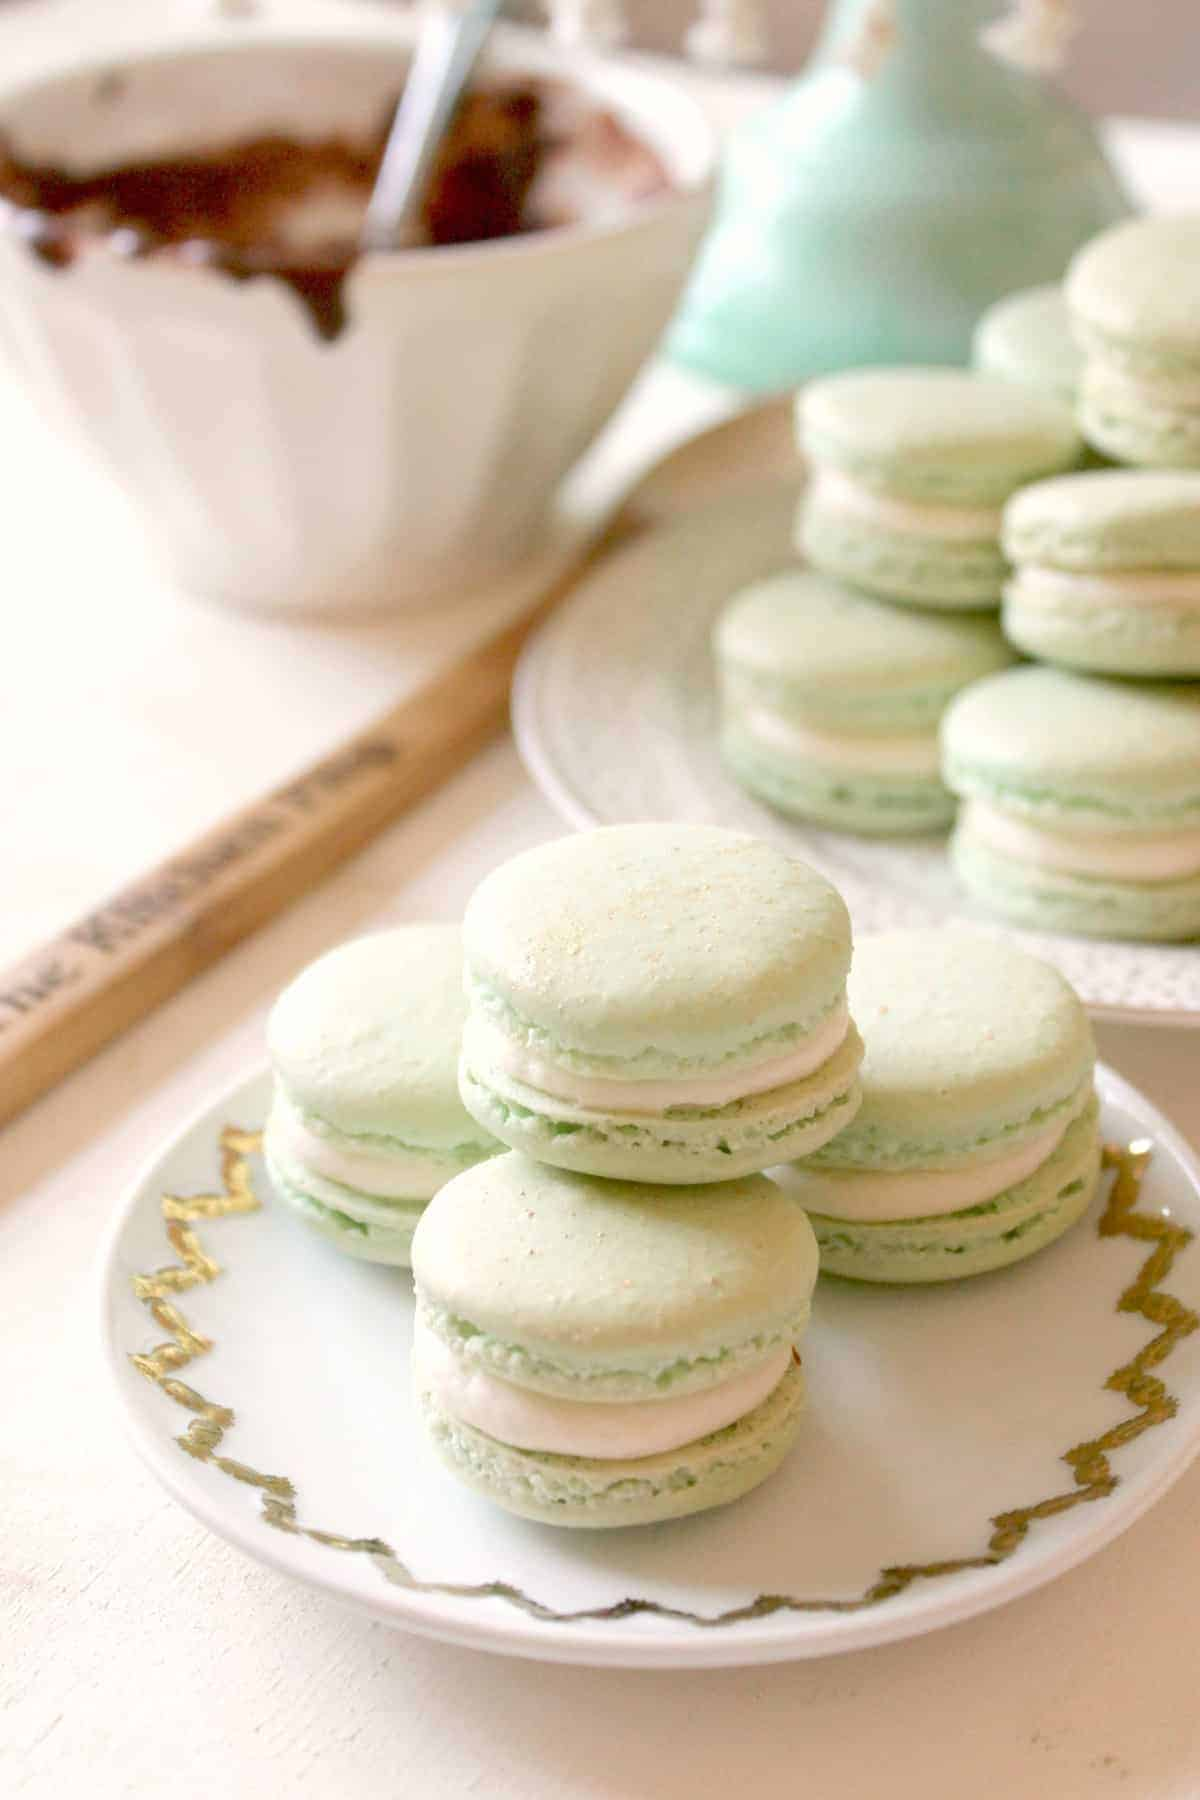 Irish Cream & Milk Chocolate French Macarons! Irish Cream Buttercream and gooey center of rich, milk chocolate ganache are sandwiched by classic macaron shells. Sweet and dainty, these airy little cookies make a perfect dessert for a special occasion.